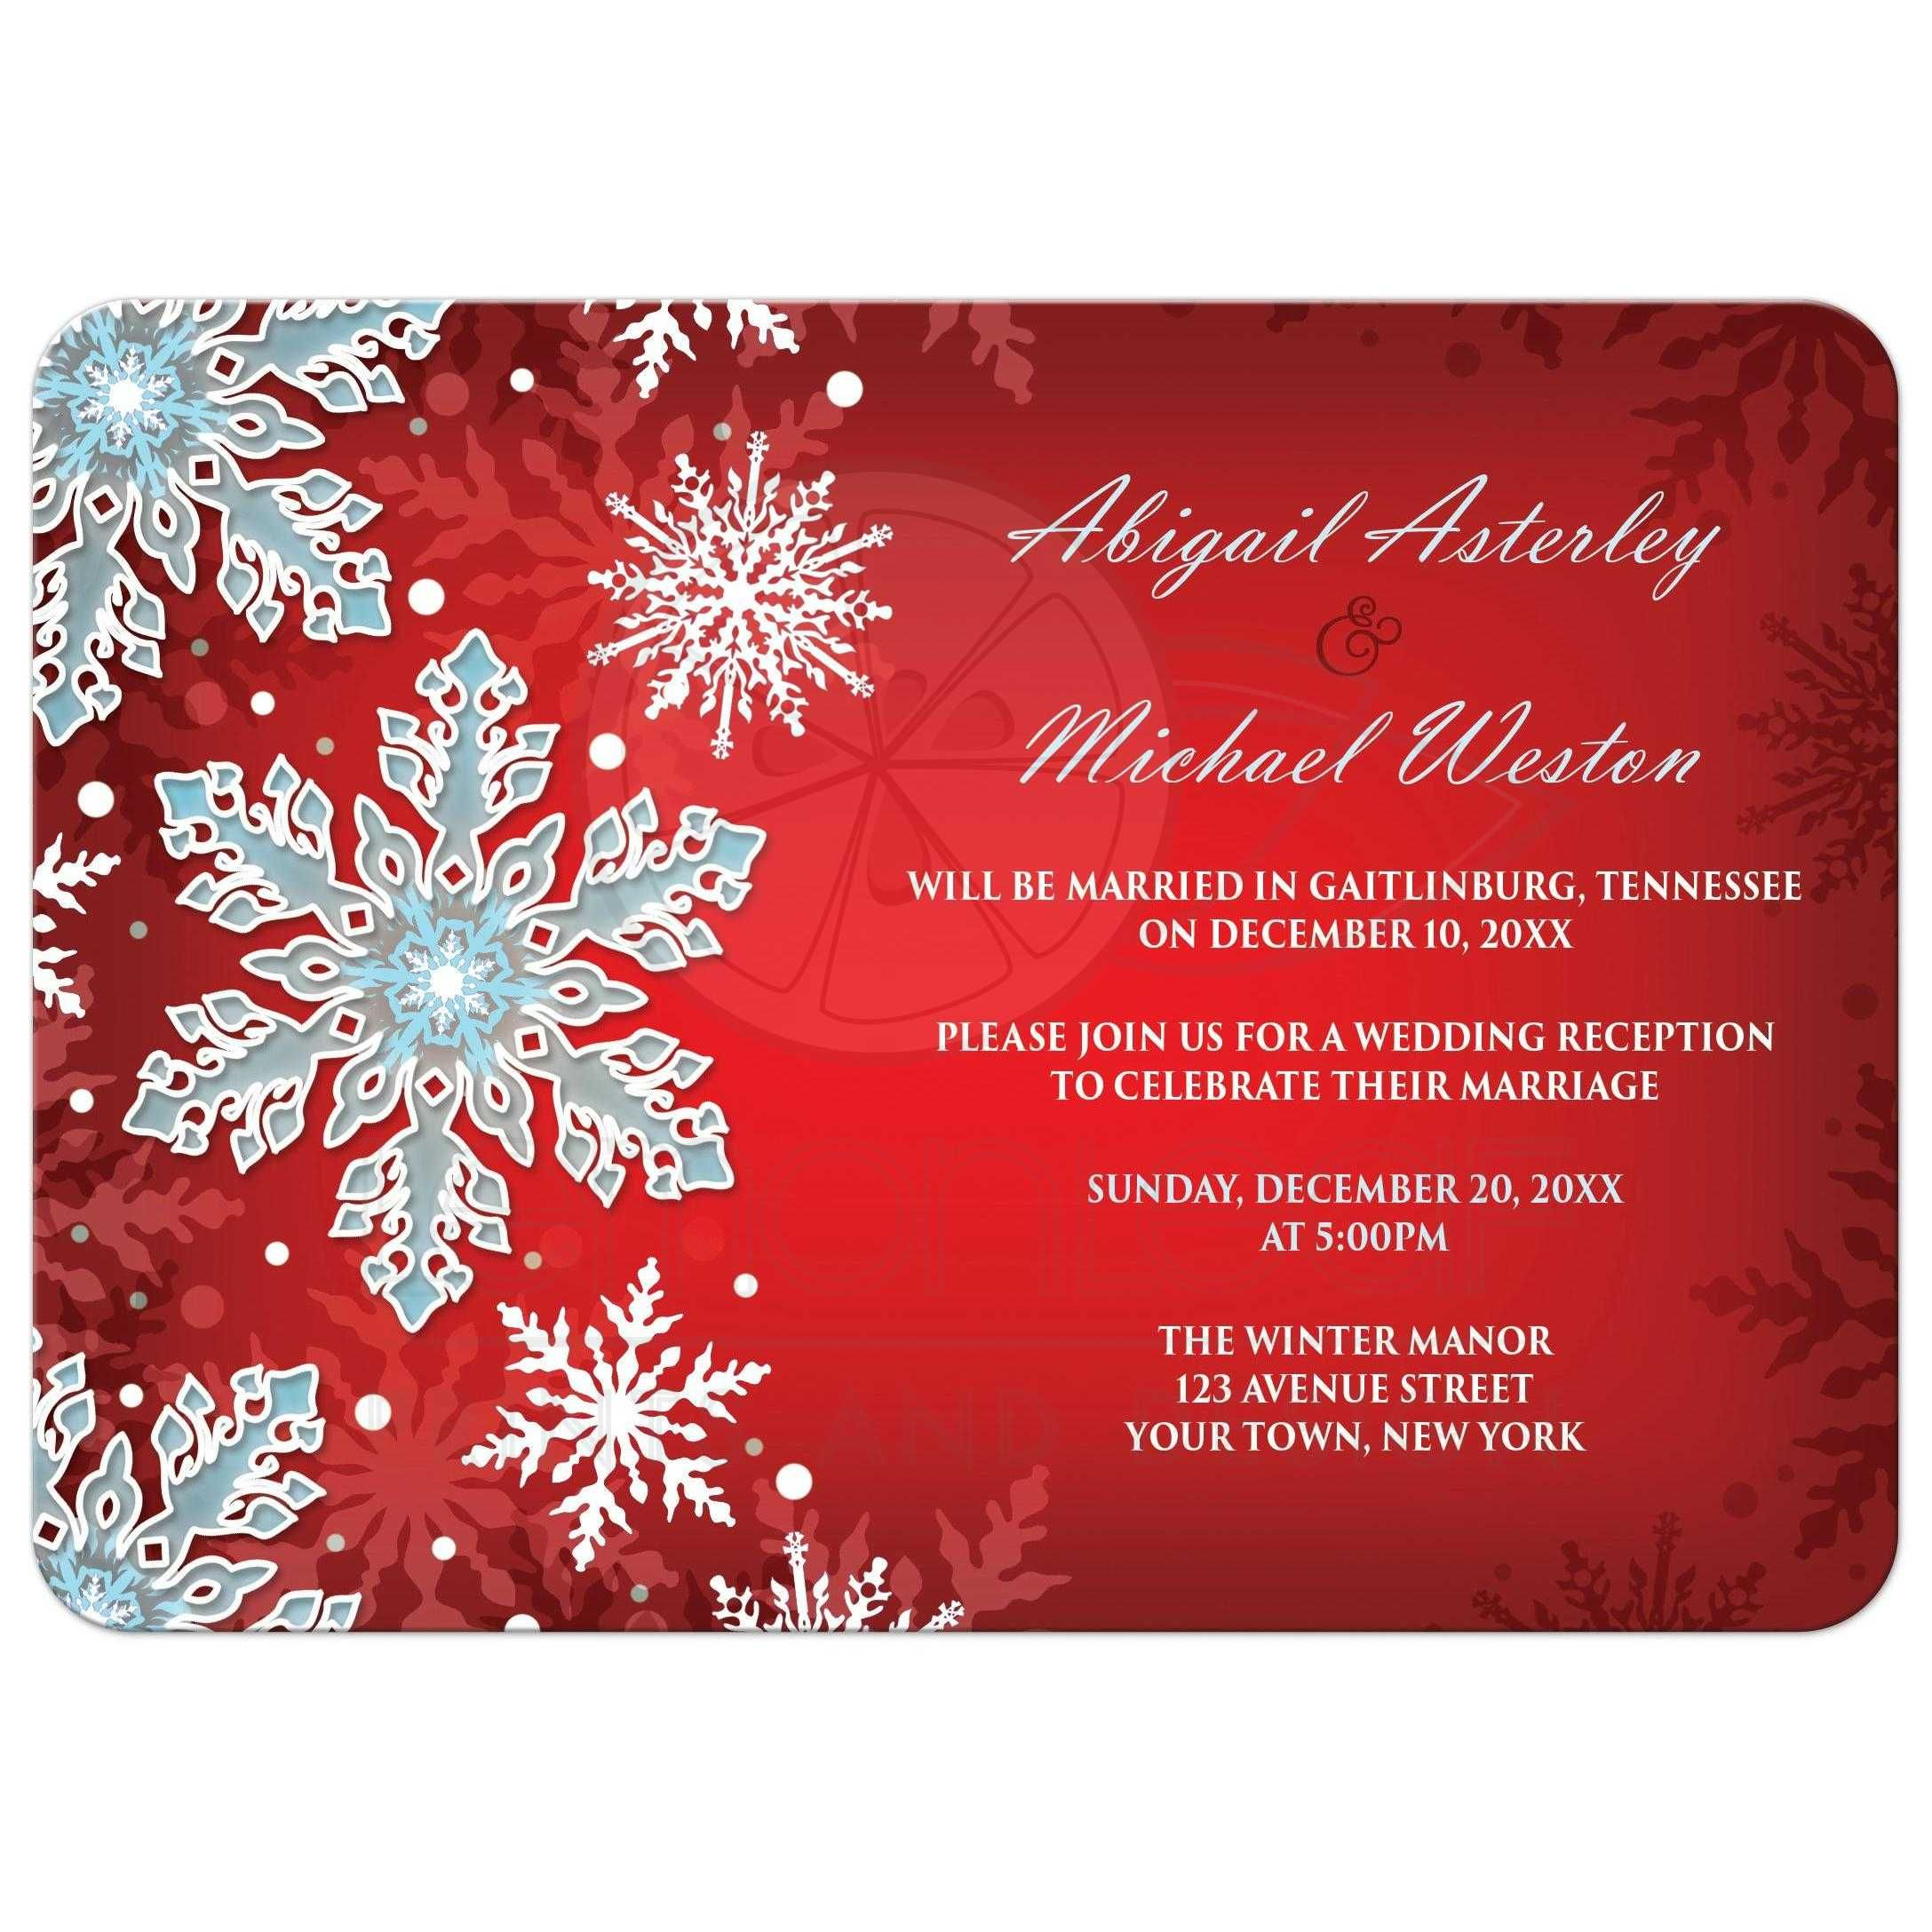 Reception Only Invitations - Royal Red White Blue Snowflake | A ...